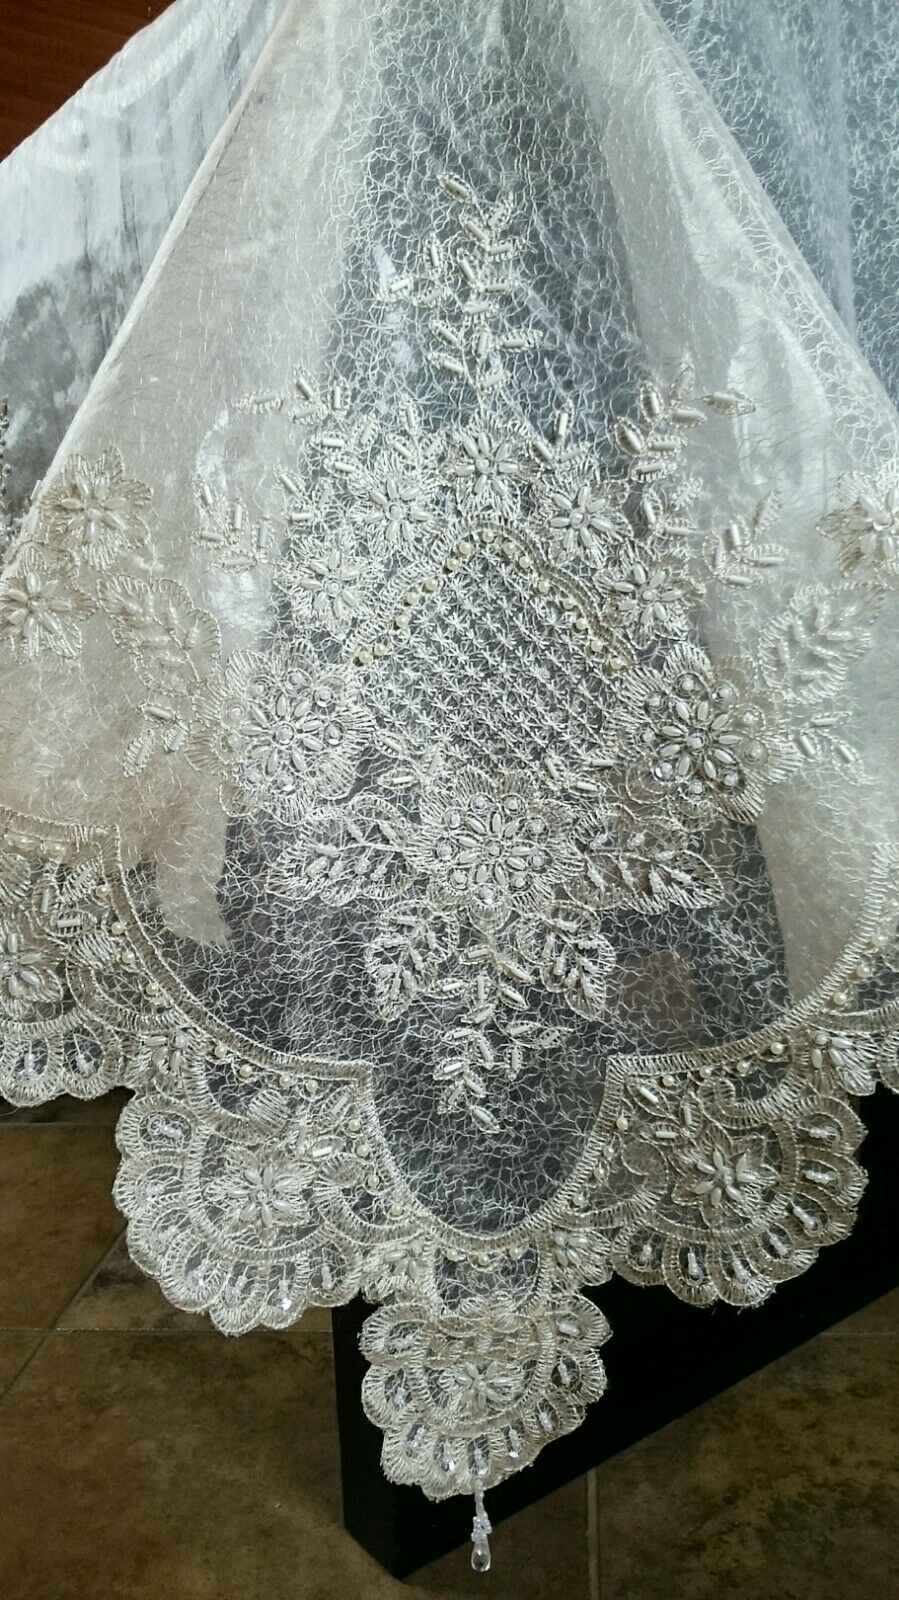 72x90  Embroidery Handmade Beaded Pearl Embroiderouge Sheer Tablecloth 2 Layers